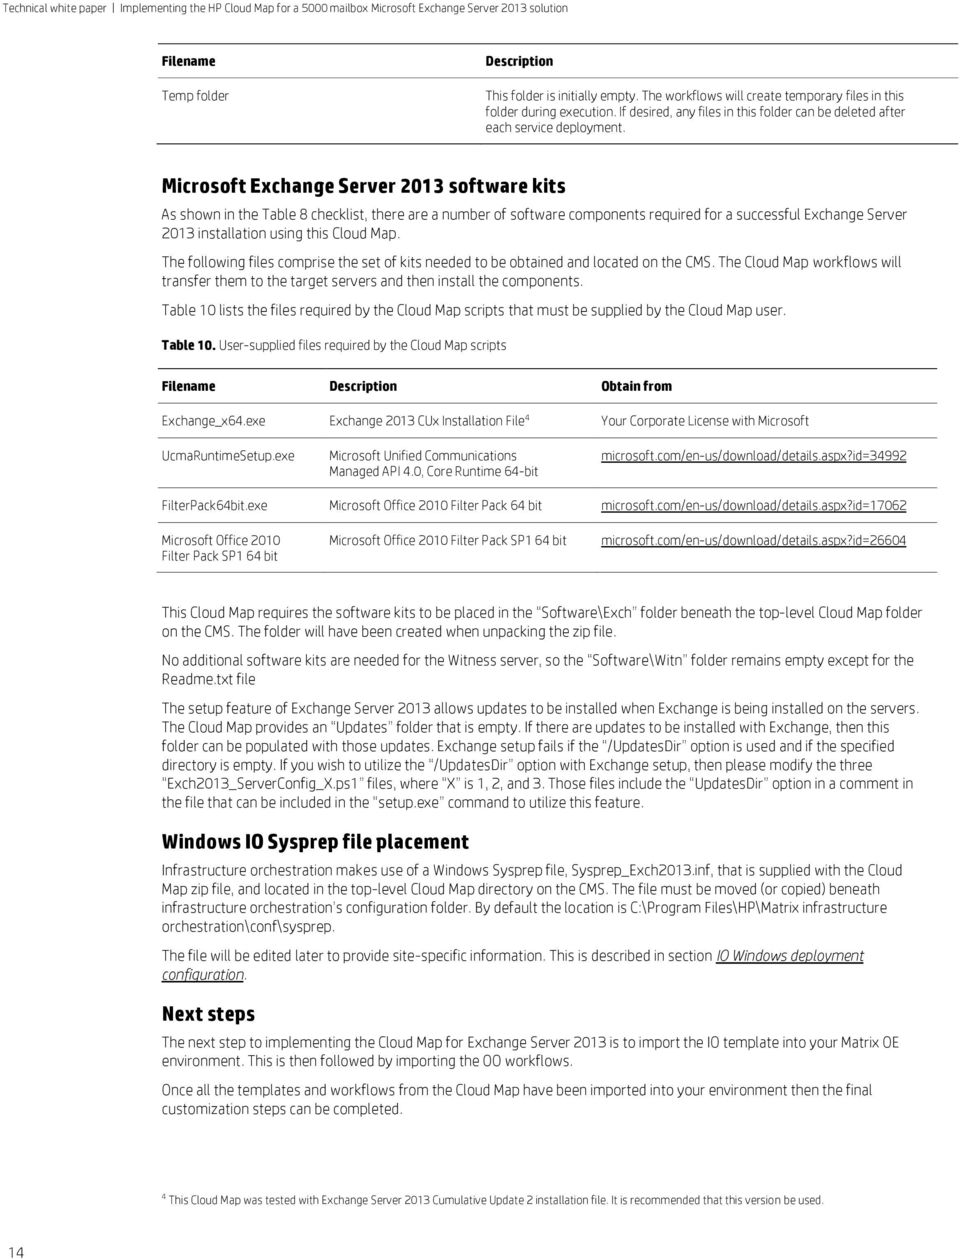 Implementing the HP Cloud Map for a 5000 mailbox Microsoft